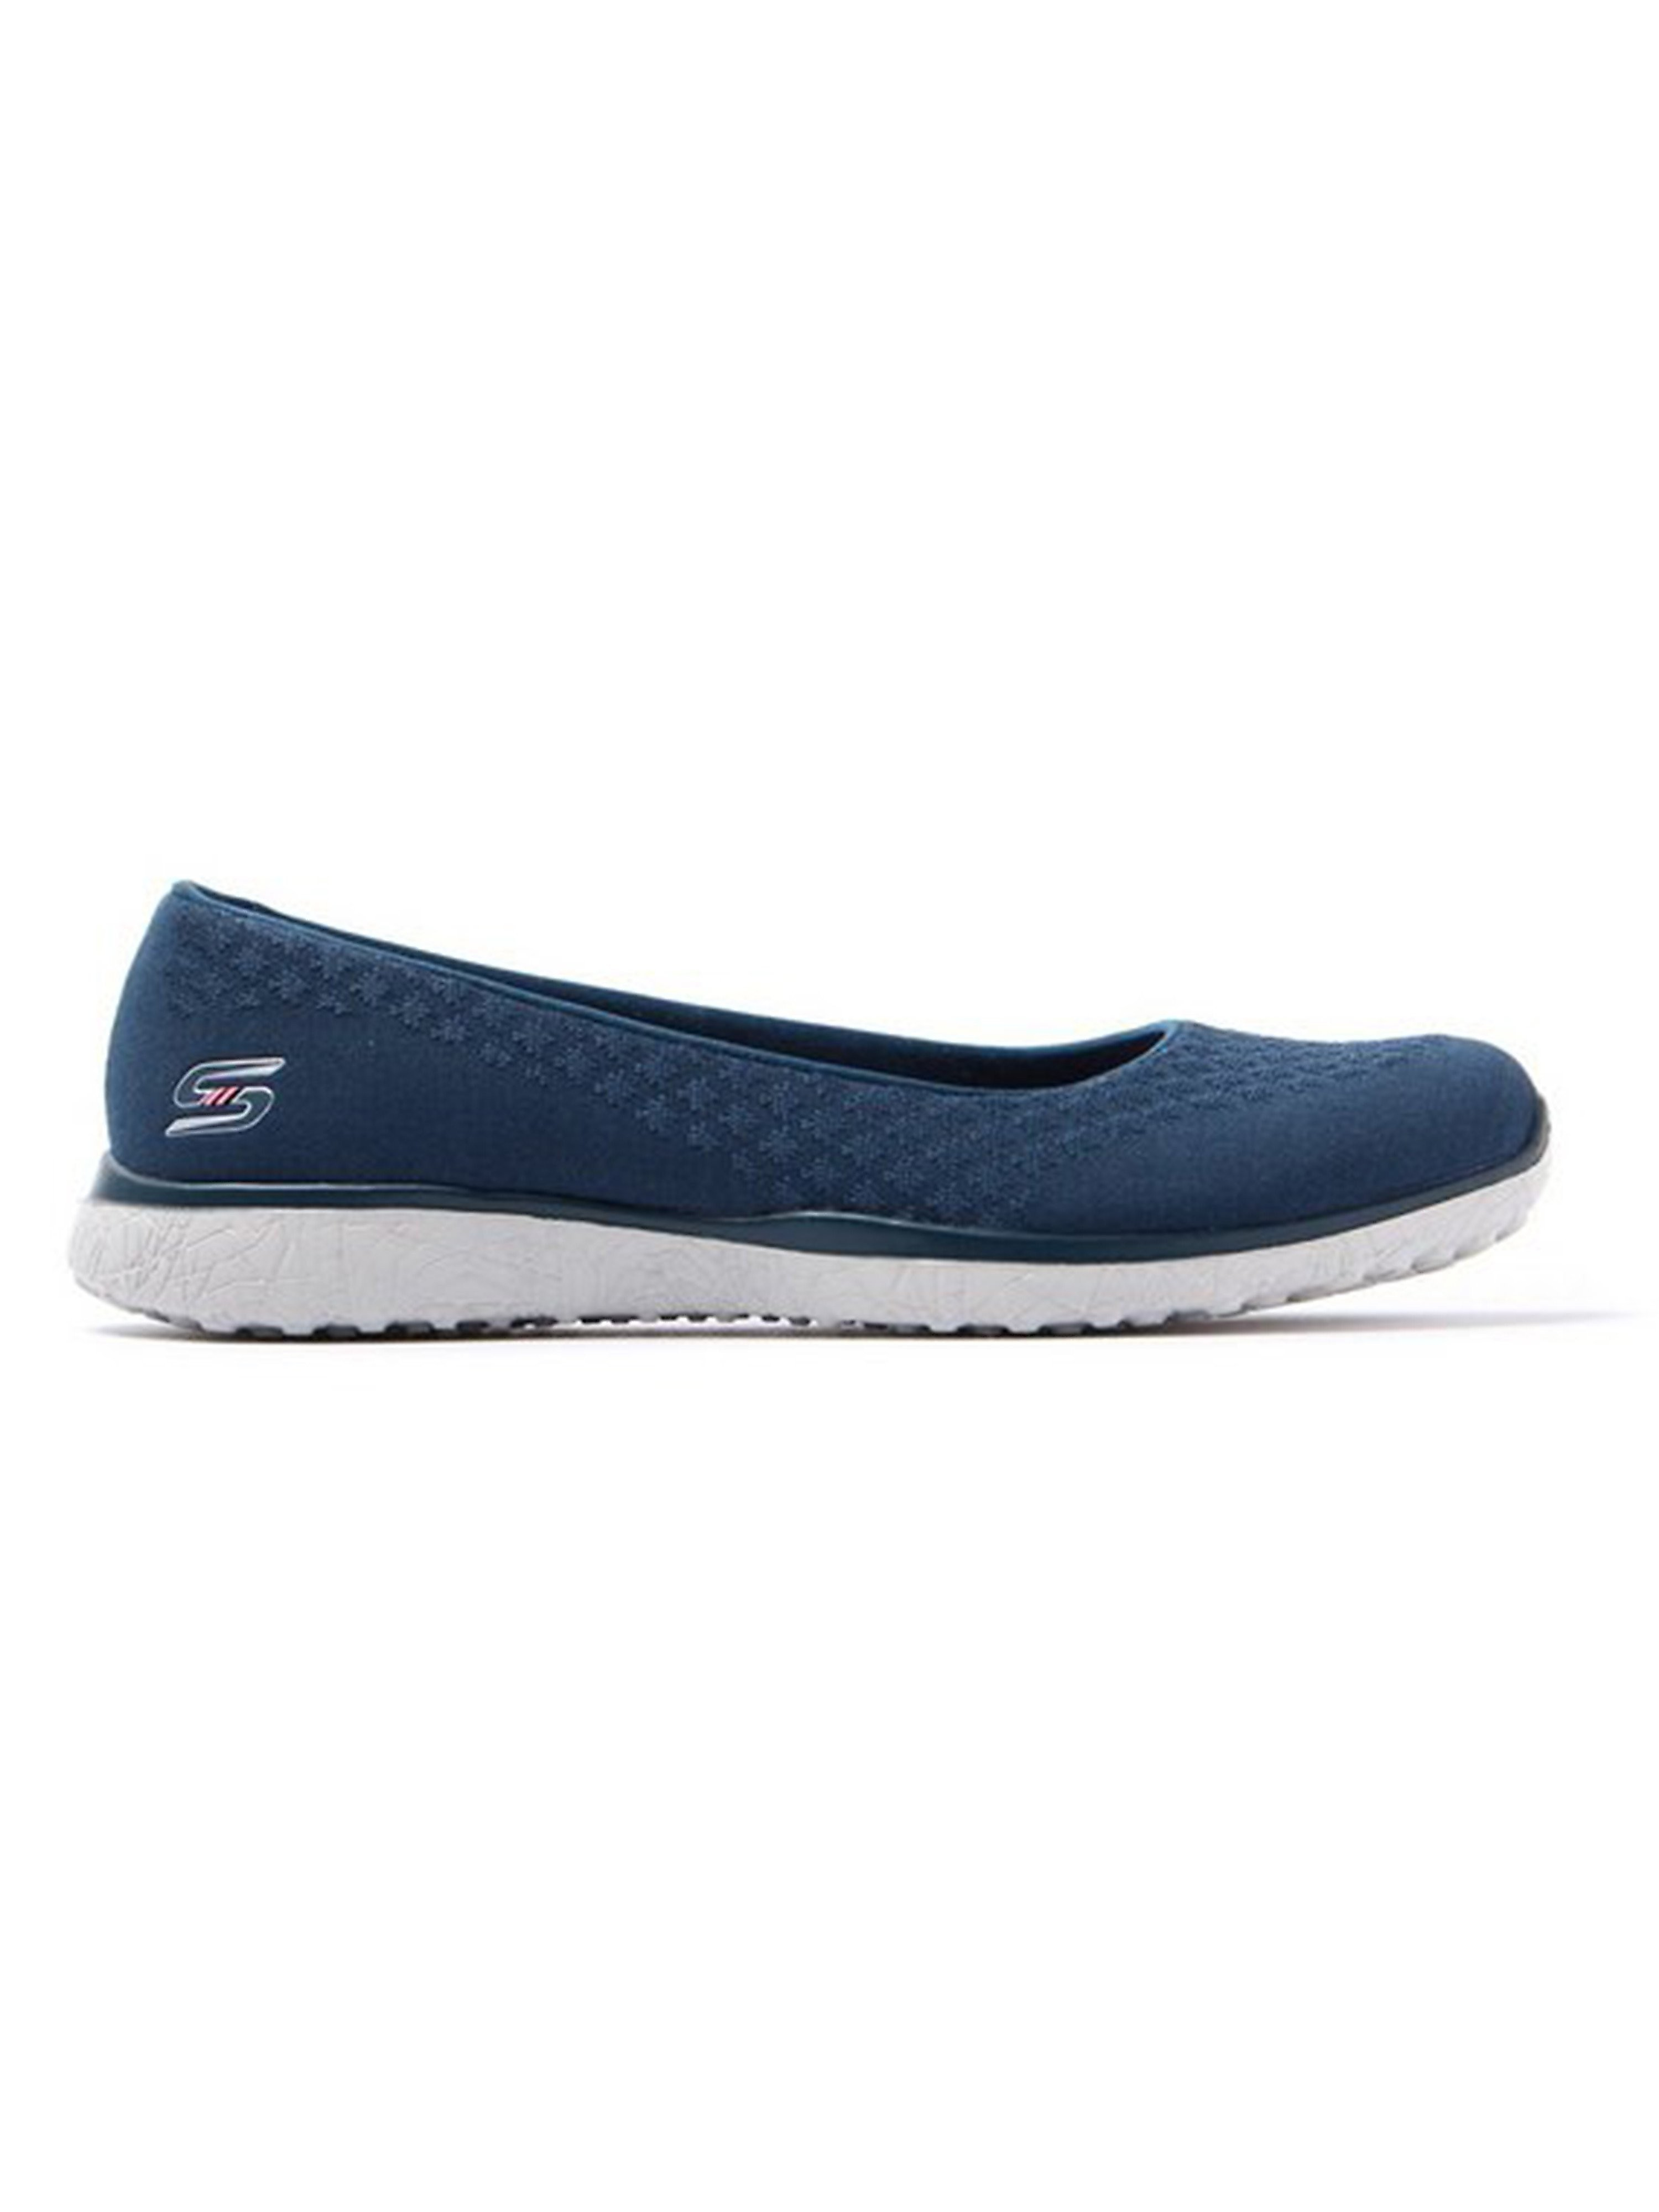 Skechers Women's Microburst One Up Trainers - Navy